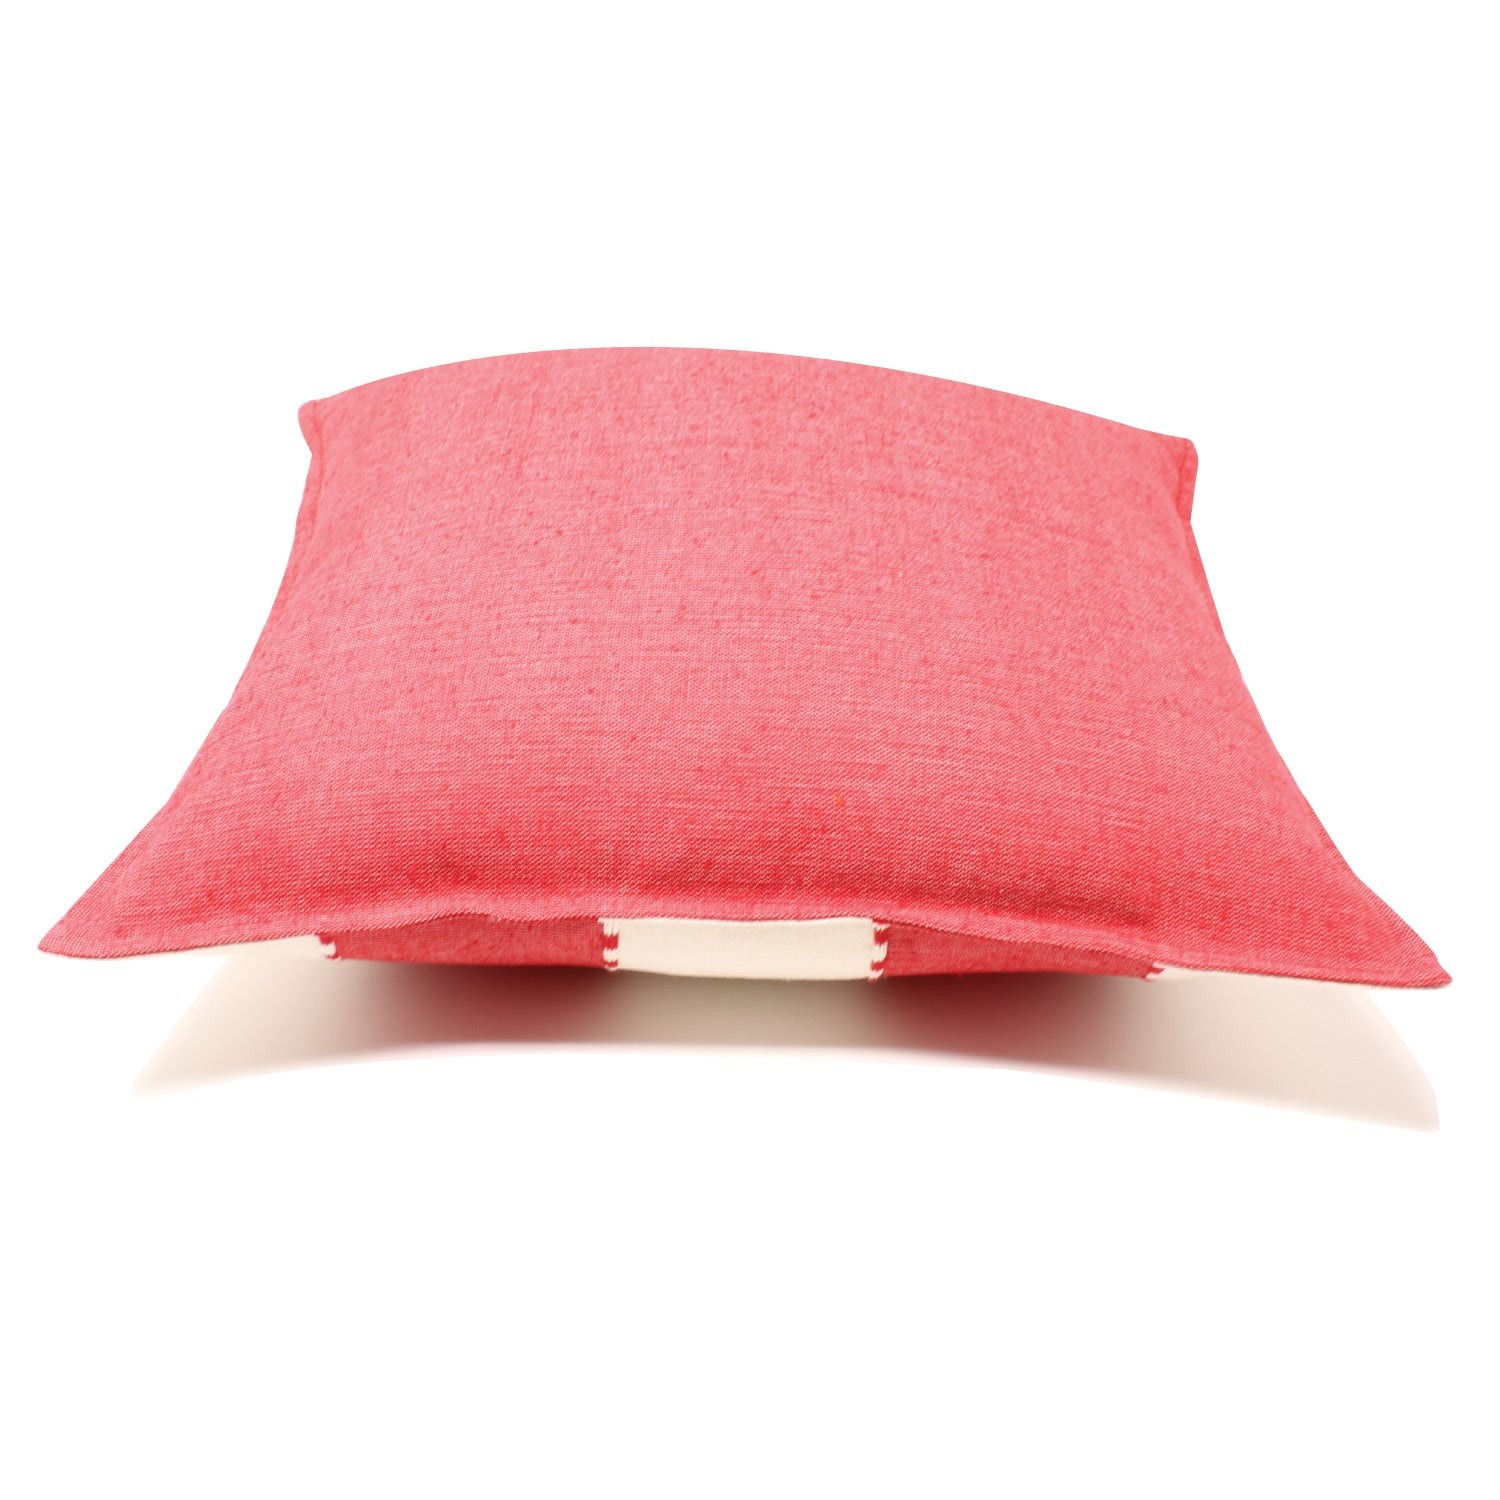 Mitla Handwoven Pillow - Cranberry